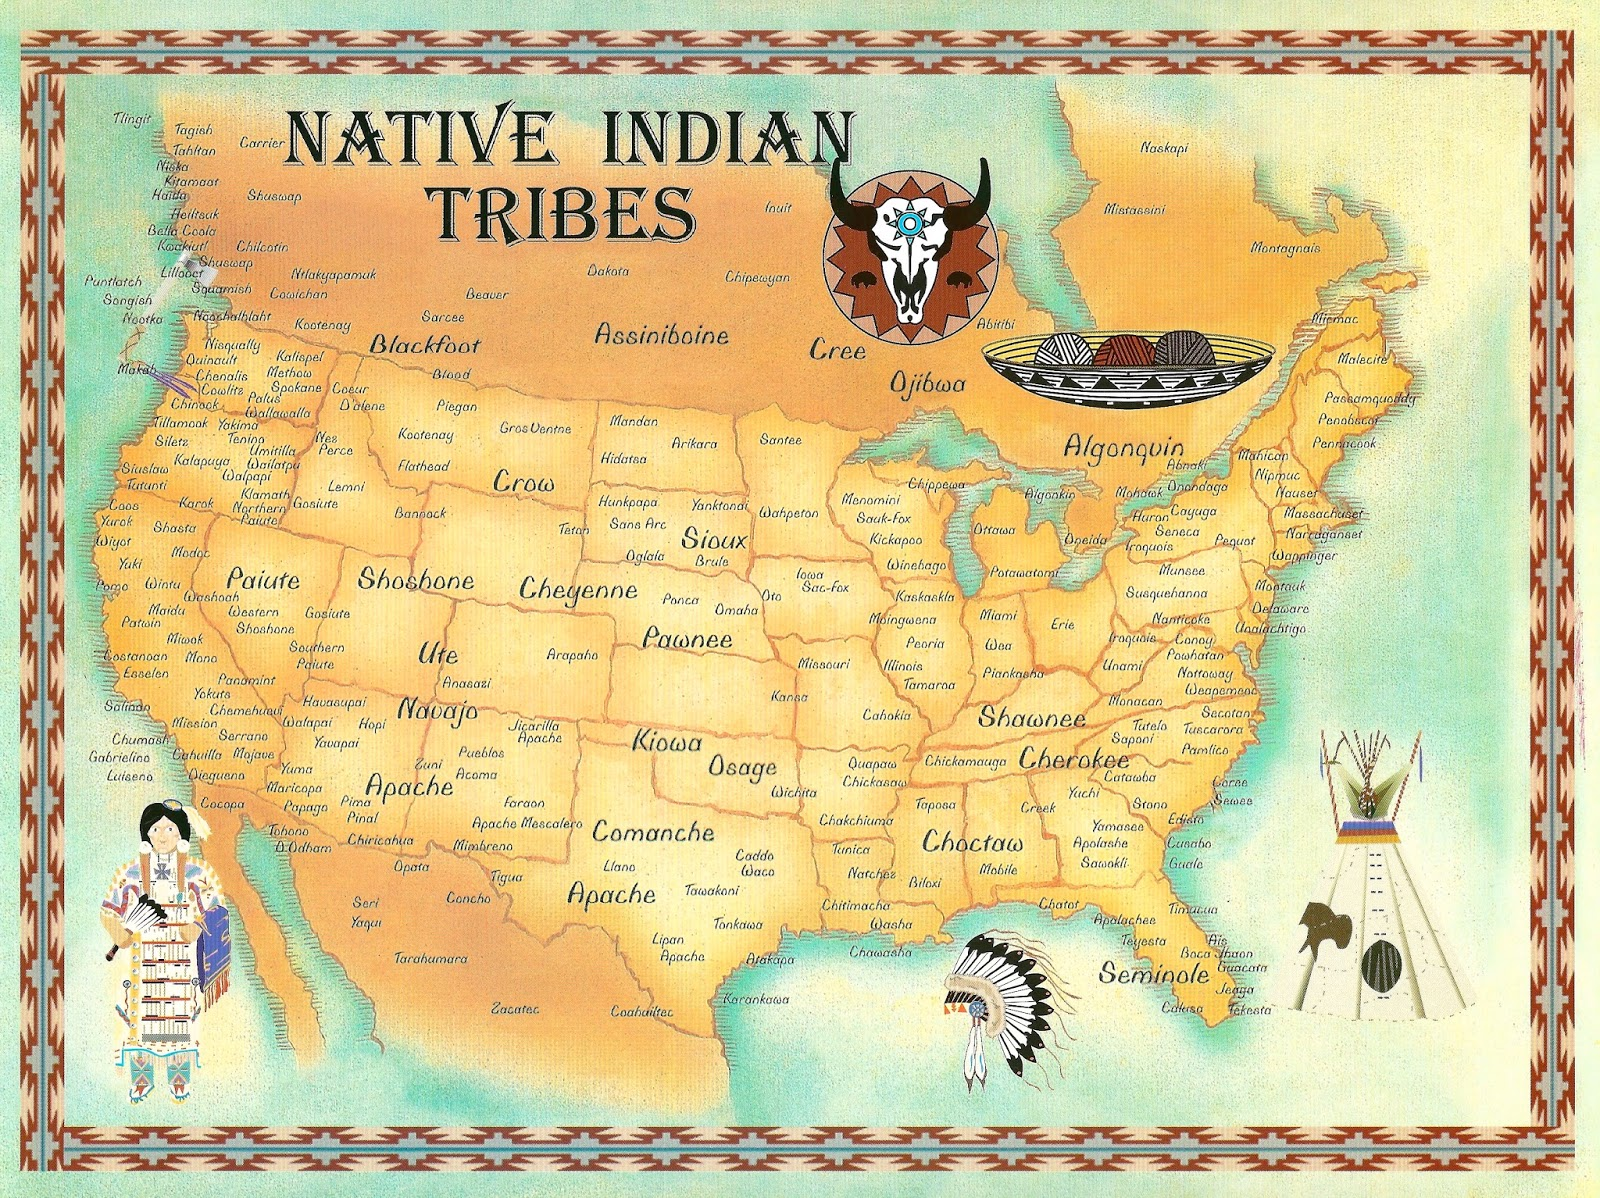 an analysis of the endangered cherokee language by native americans in the united states